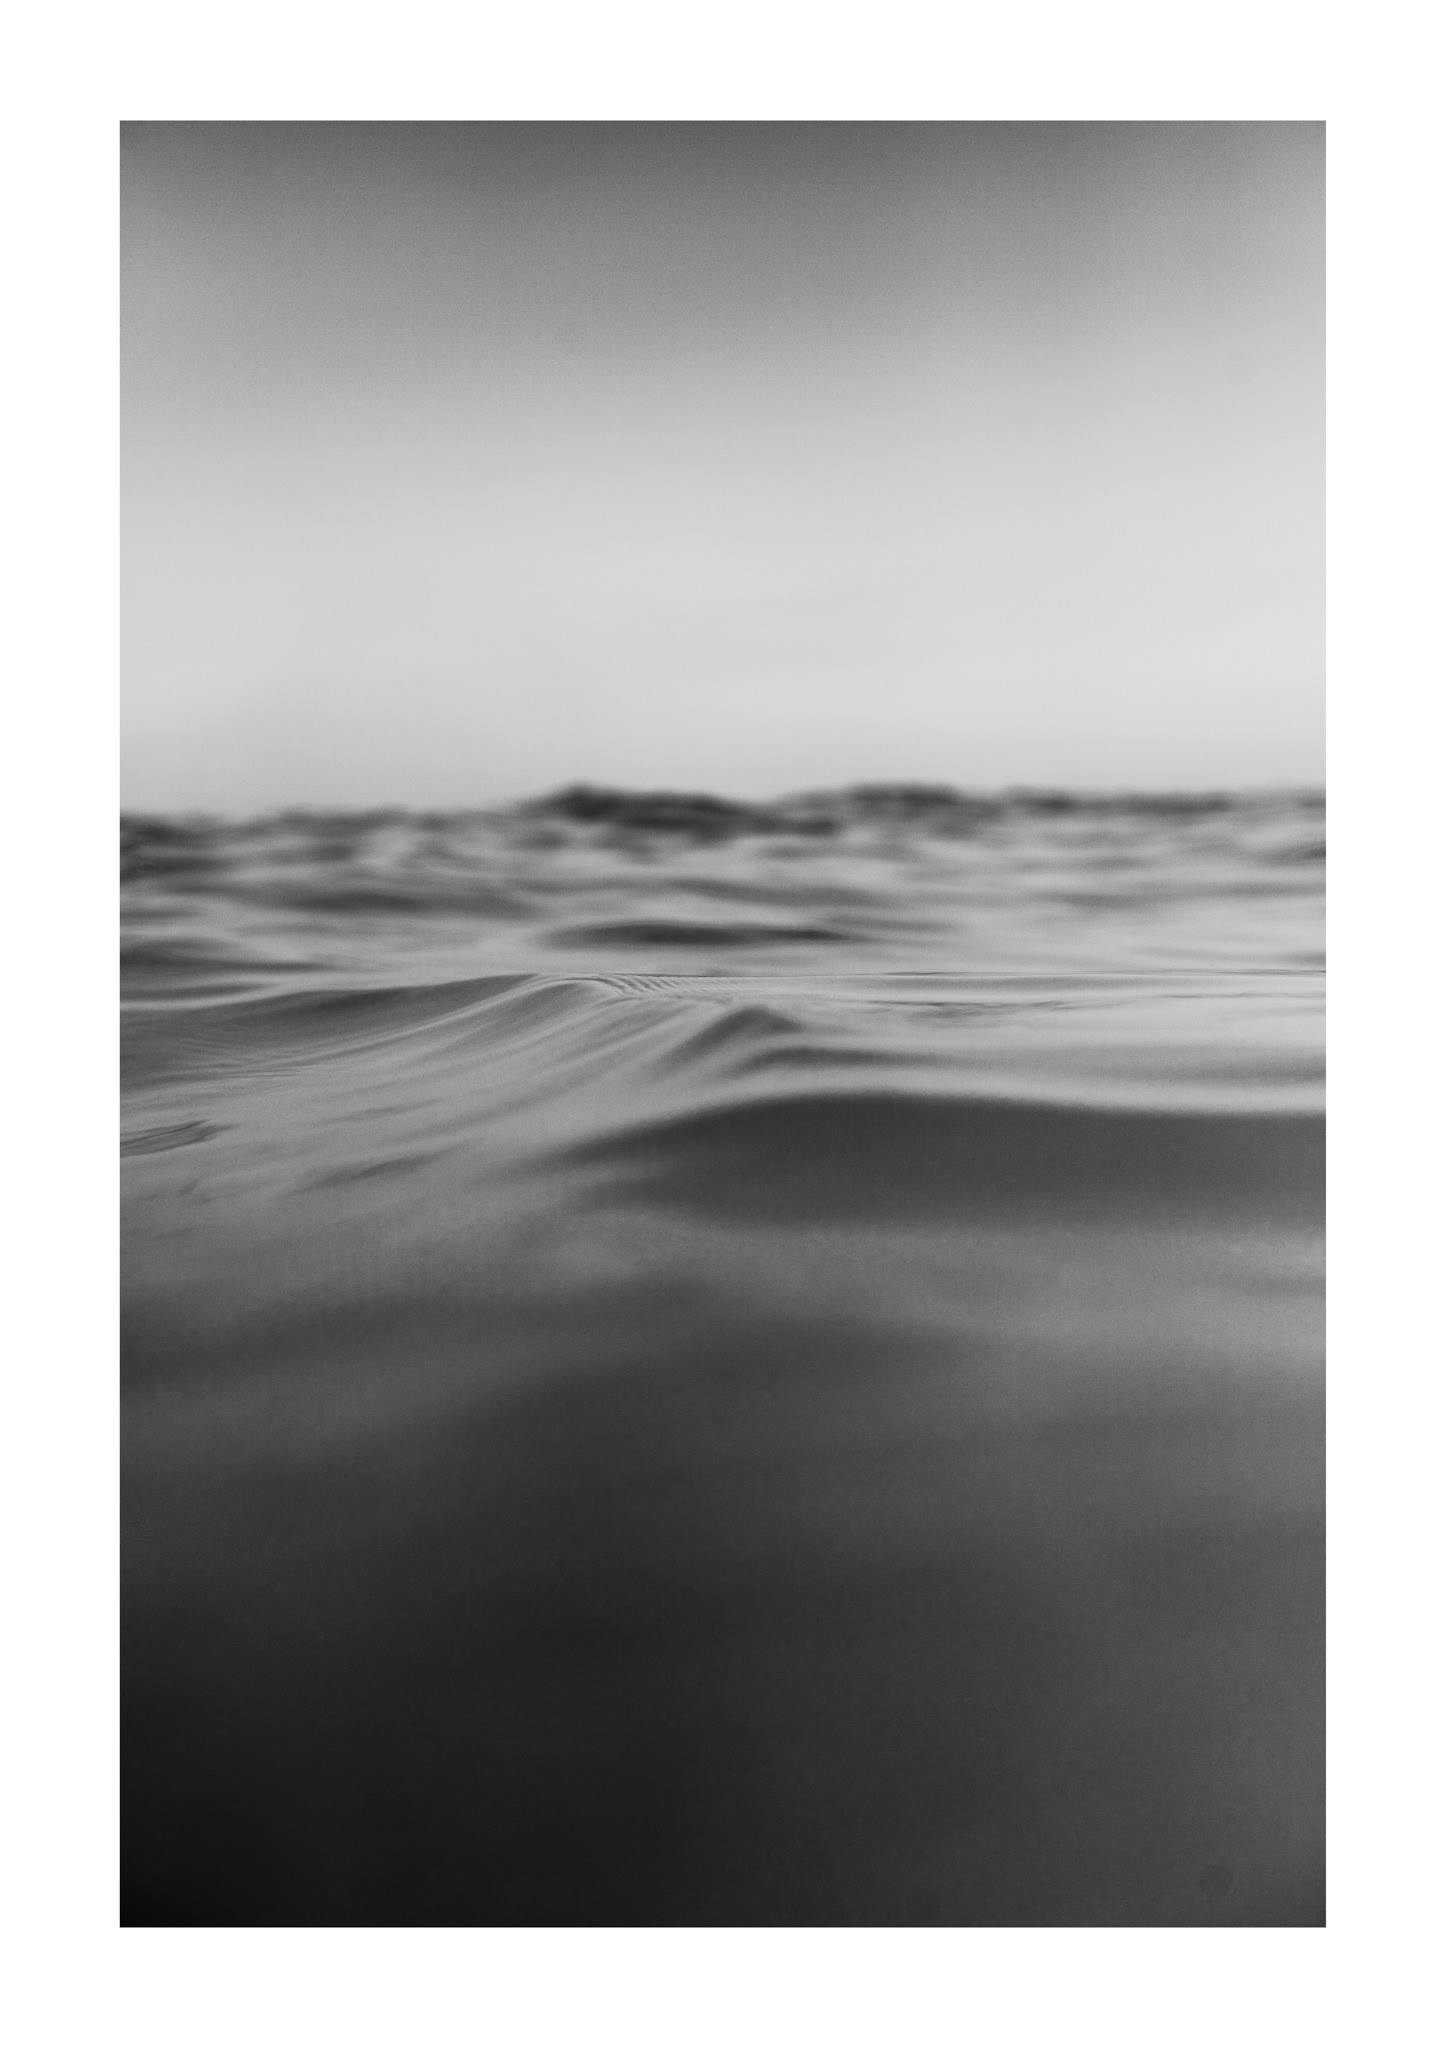 A water surface with small waves passing by